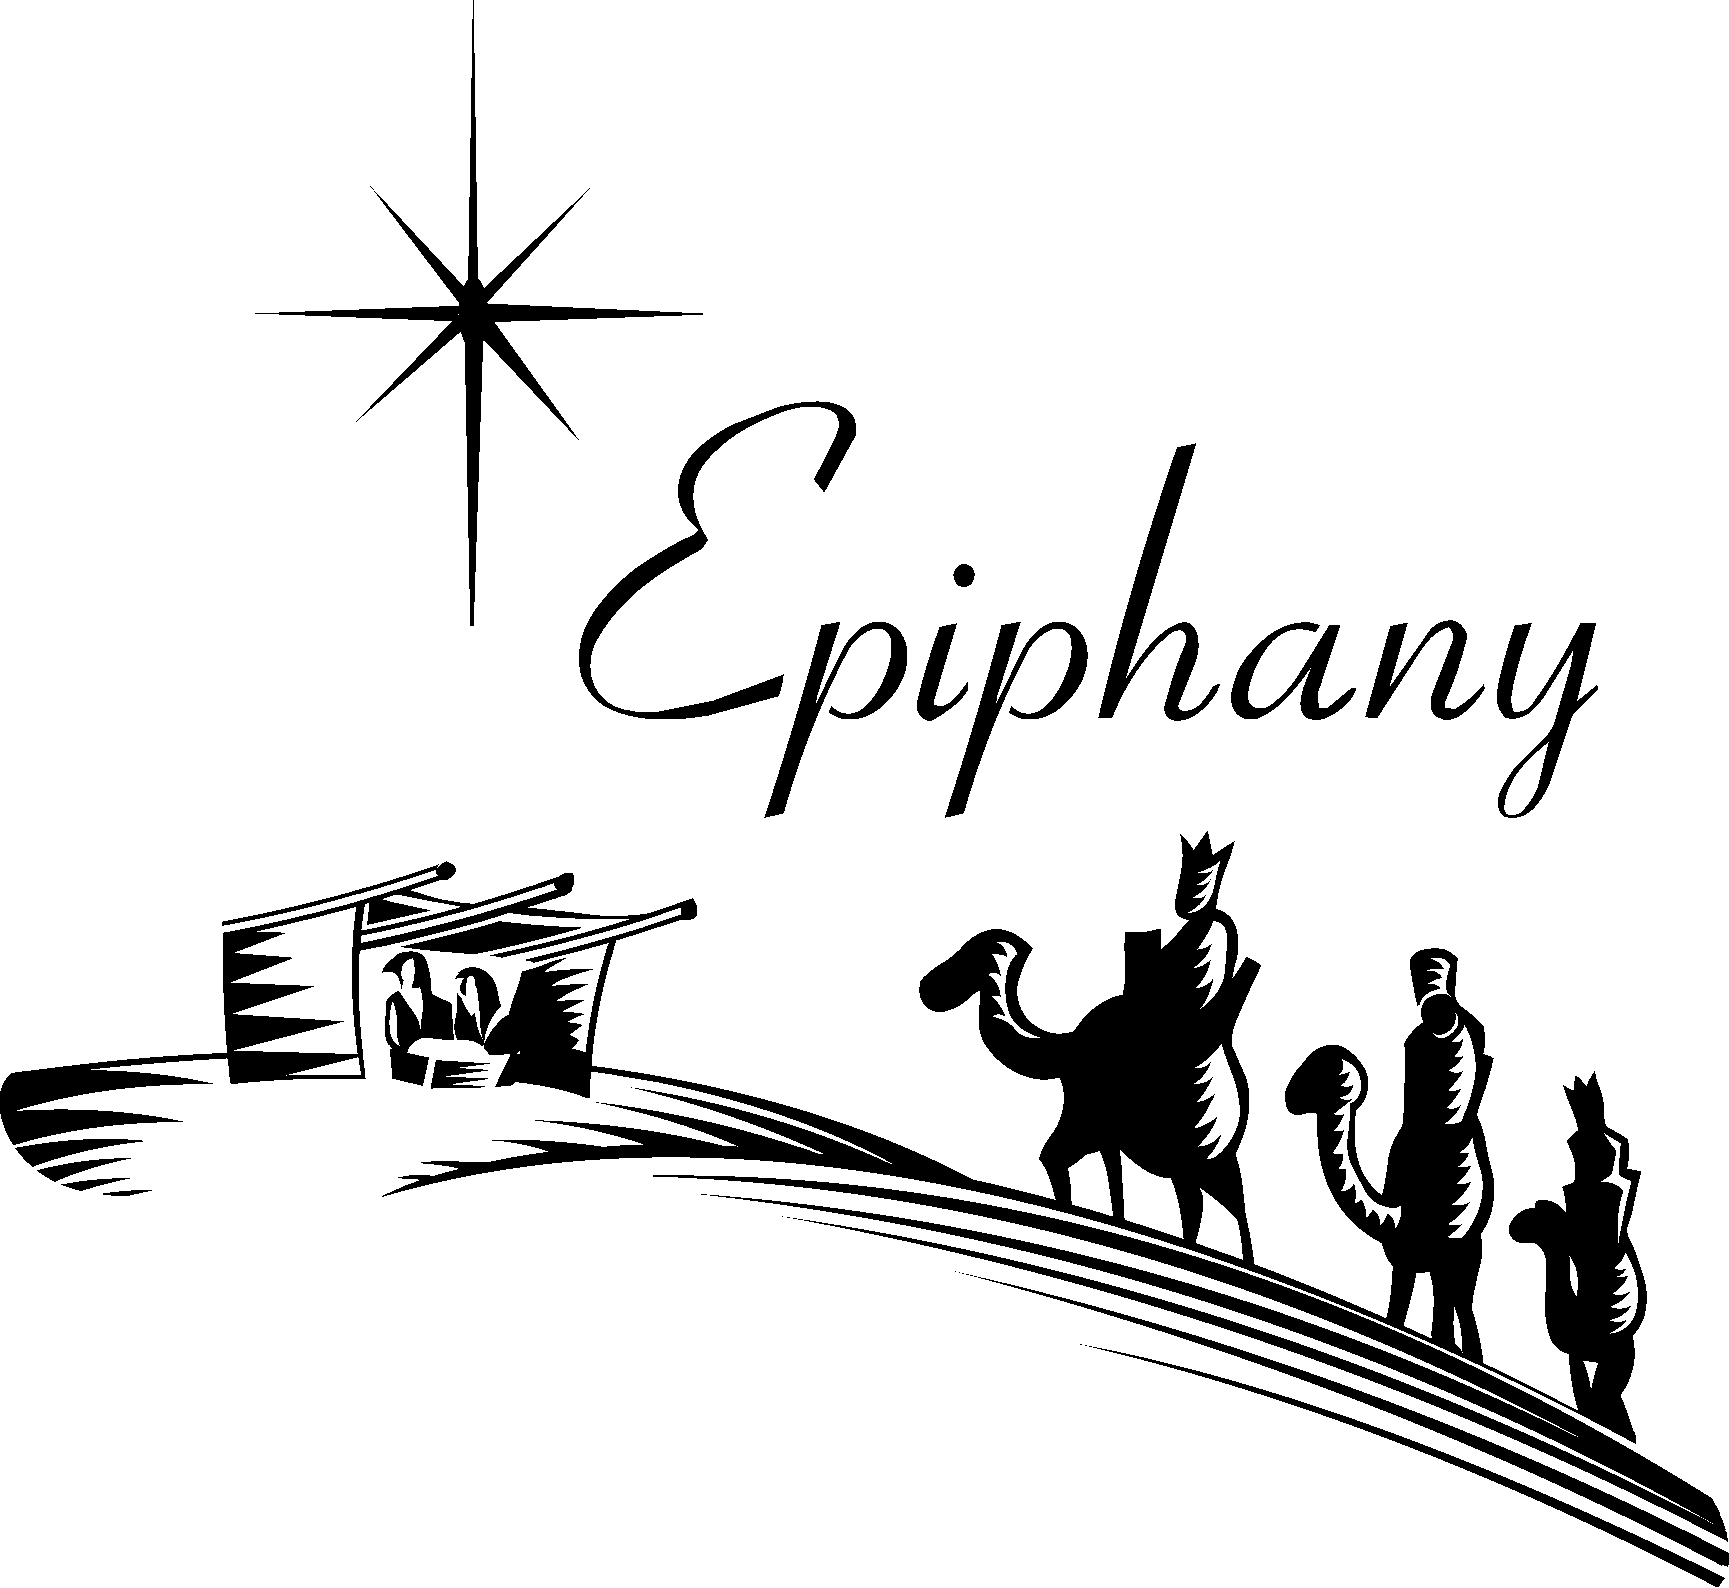 Epiphany clipart epiphany sunday. New design digital collection